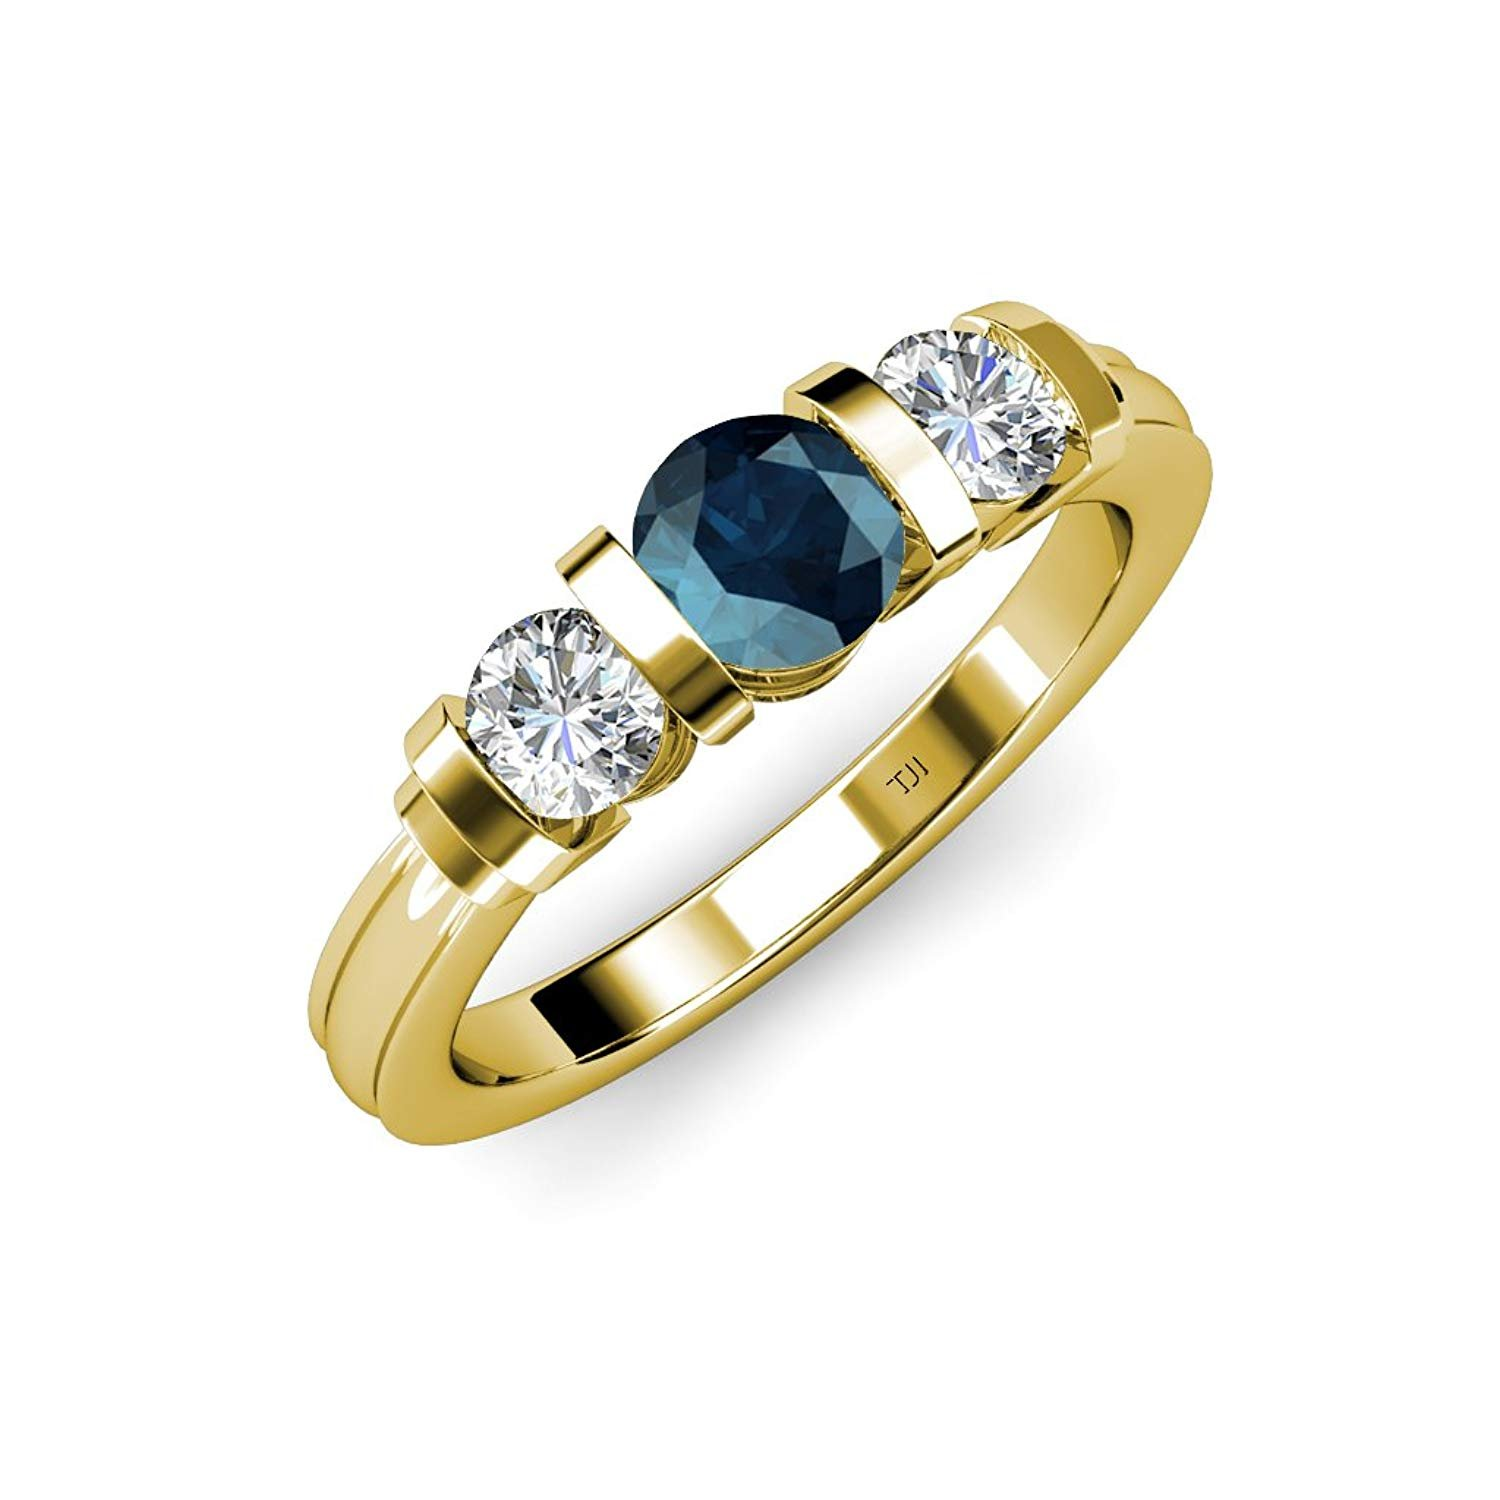 Blue and White Diamond (SI2-I1, G-H) Bar Set Three Stone Ring 1.10 ct tw in 14K Yellow Gold.size 4.0 by TriJewels